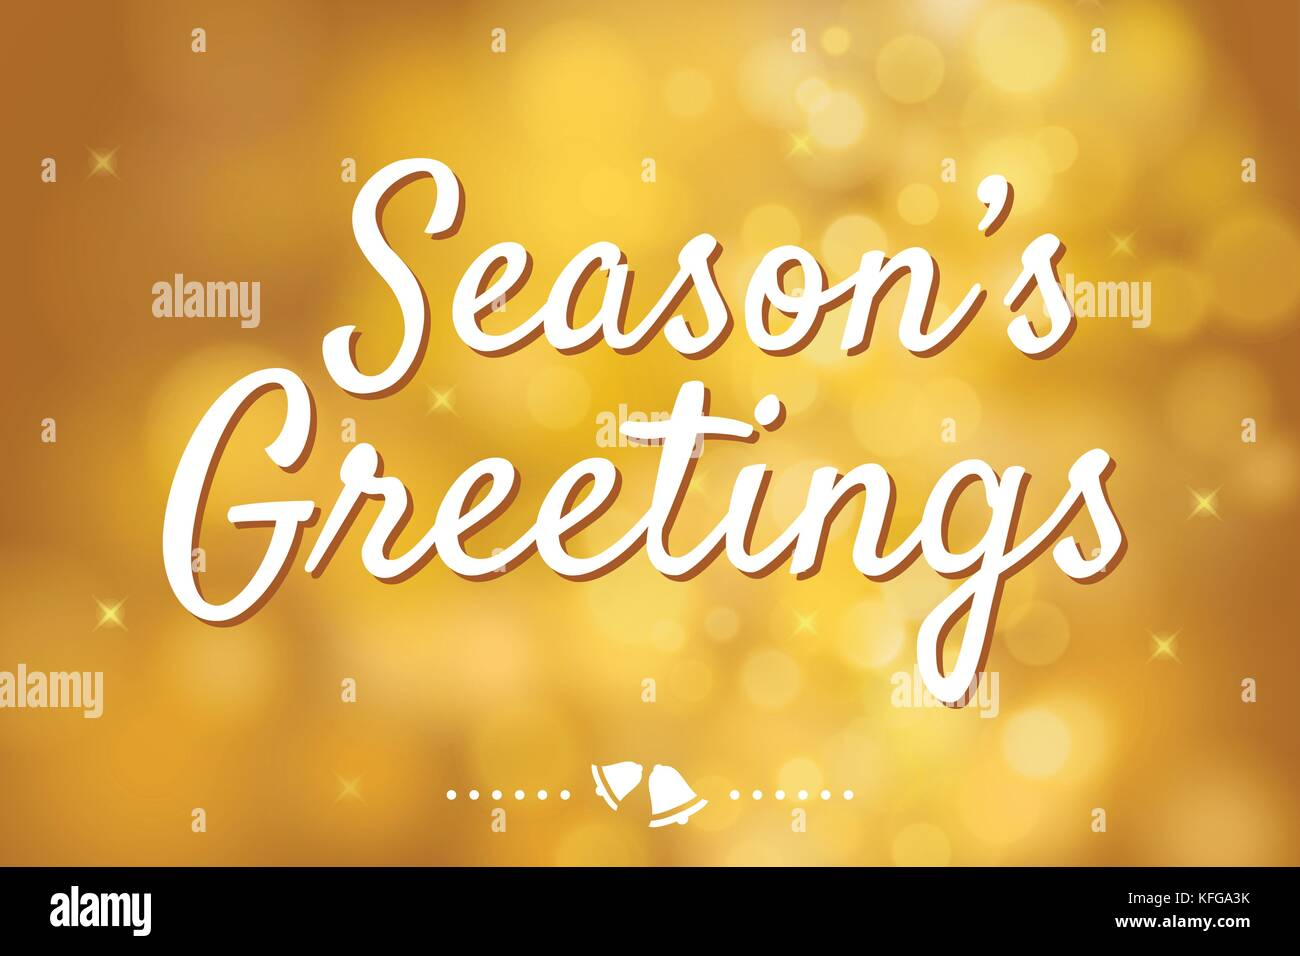 Seasons greetings with gold bokeh background for christmas theme seasons greetings with gold bokeh background for christmas theme m4hsunfo